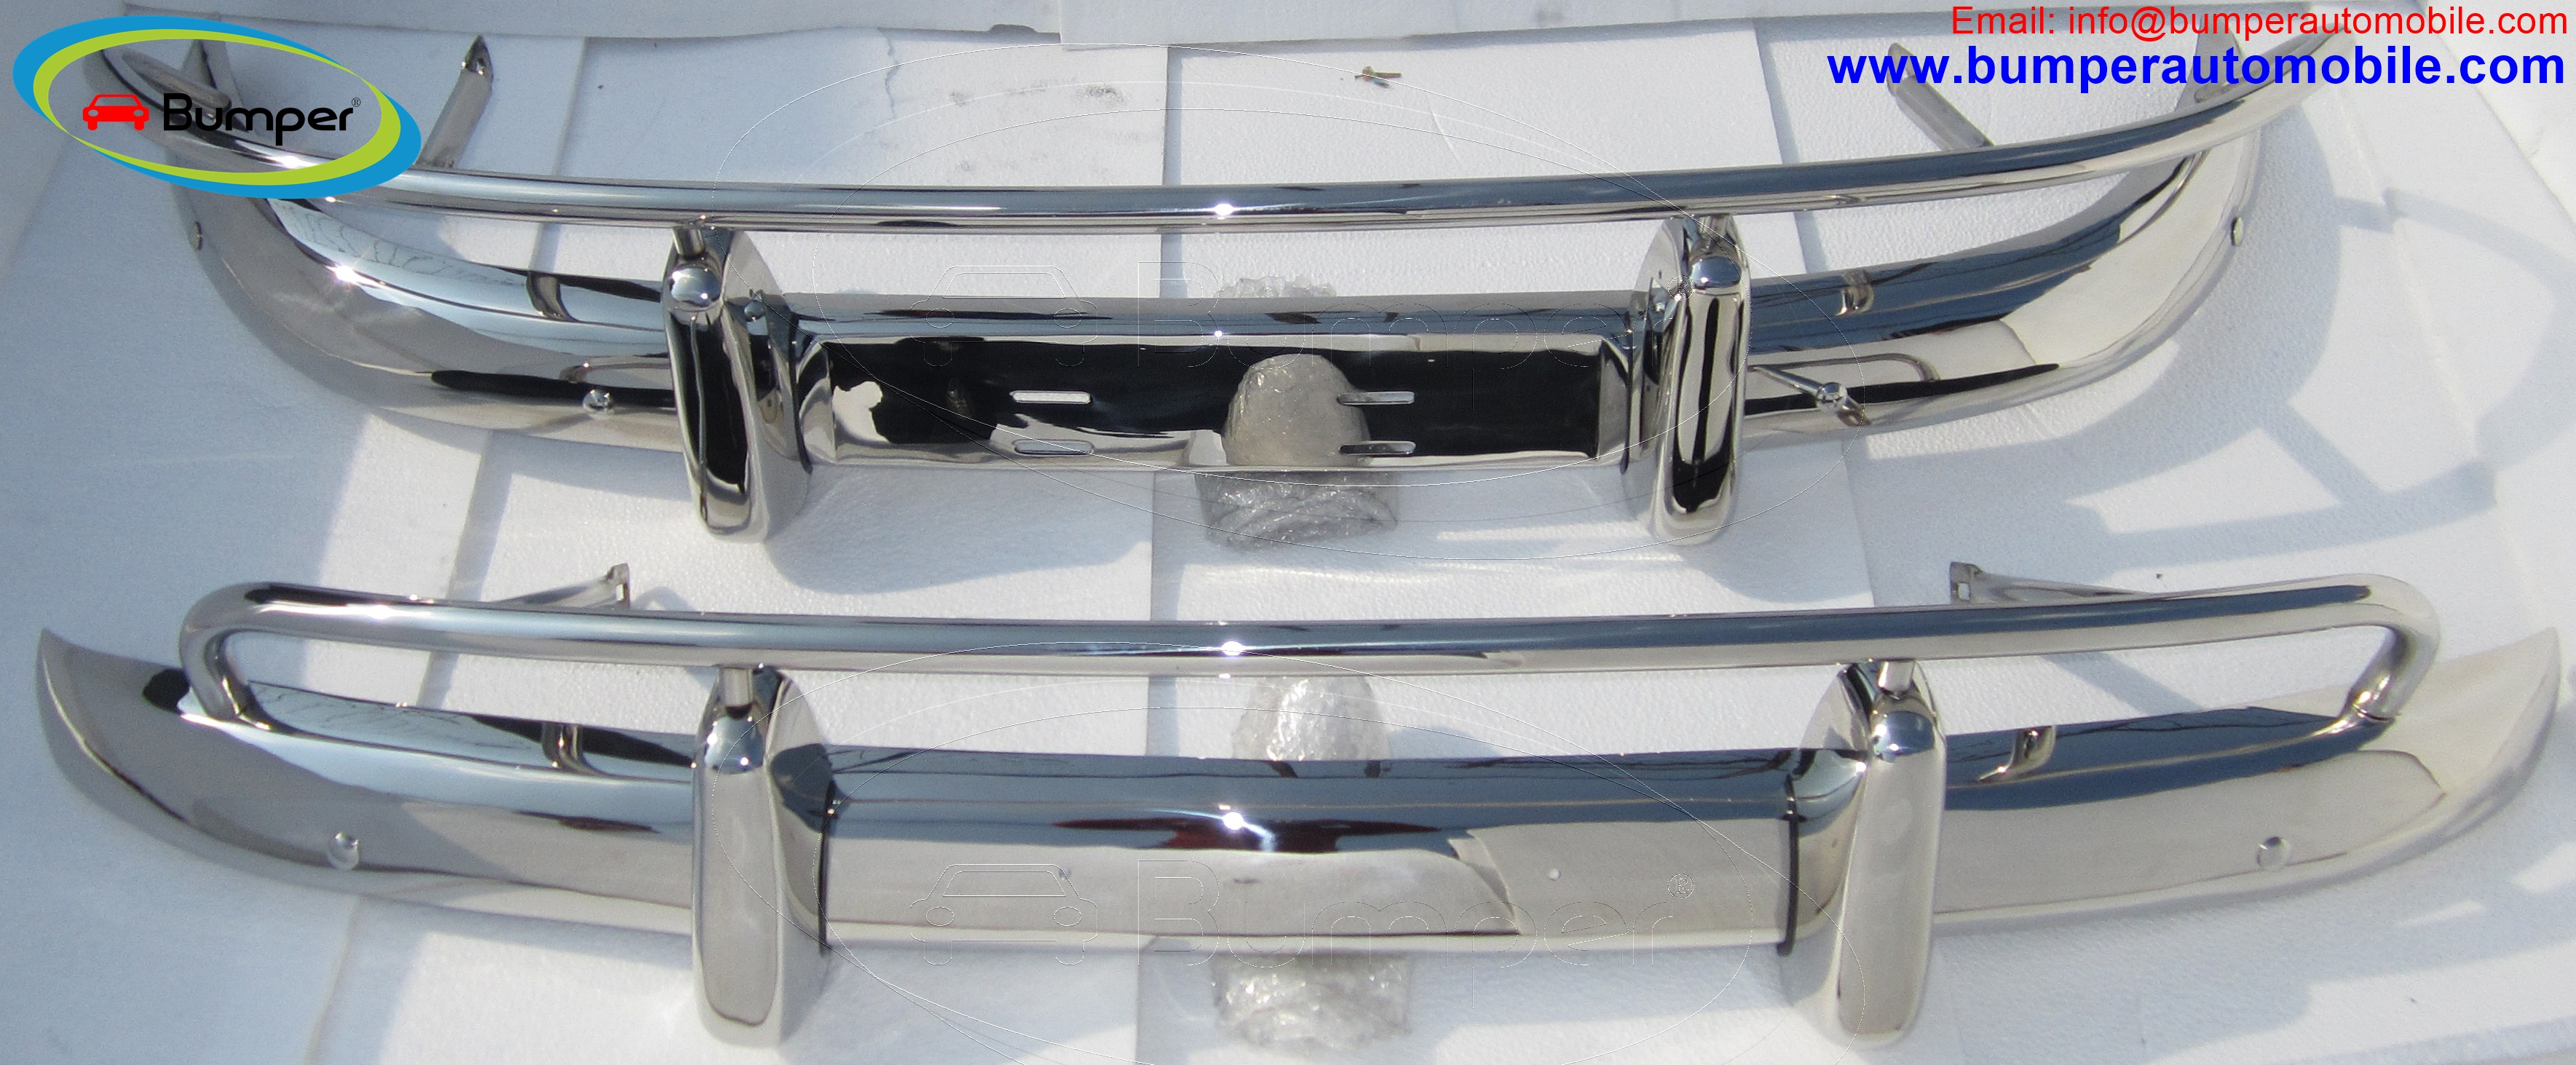 Volvo PV 544 USA type bumpers (1958-1965) polished stainless steel